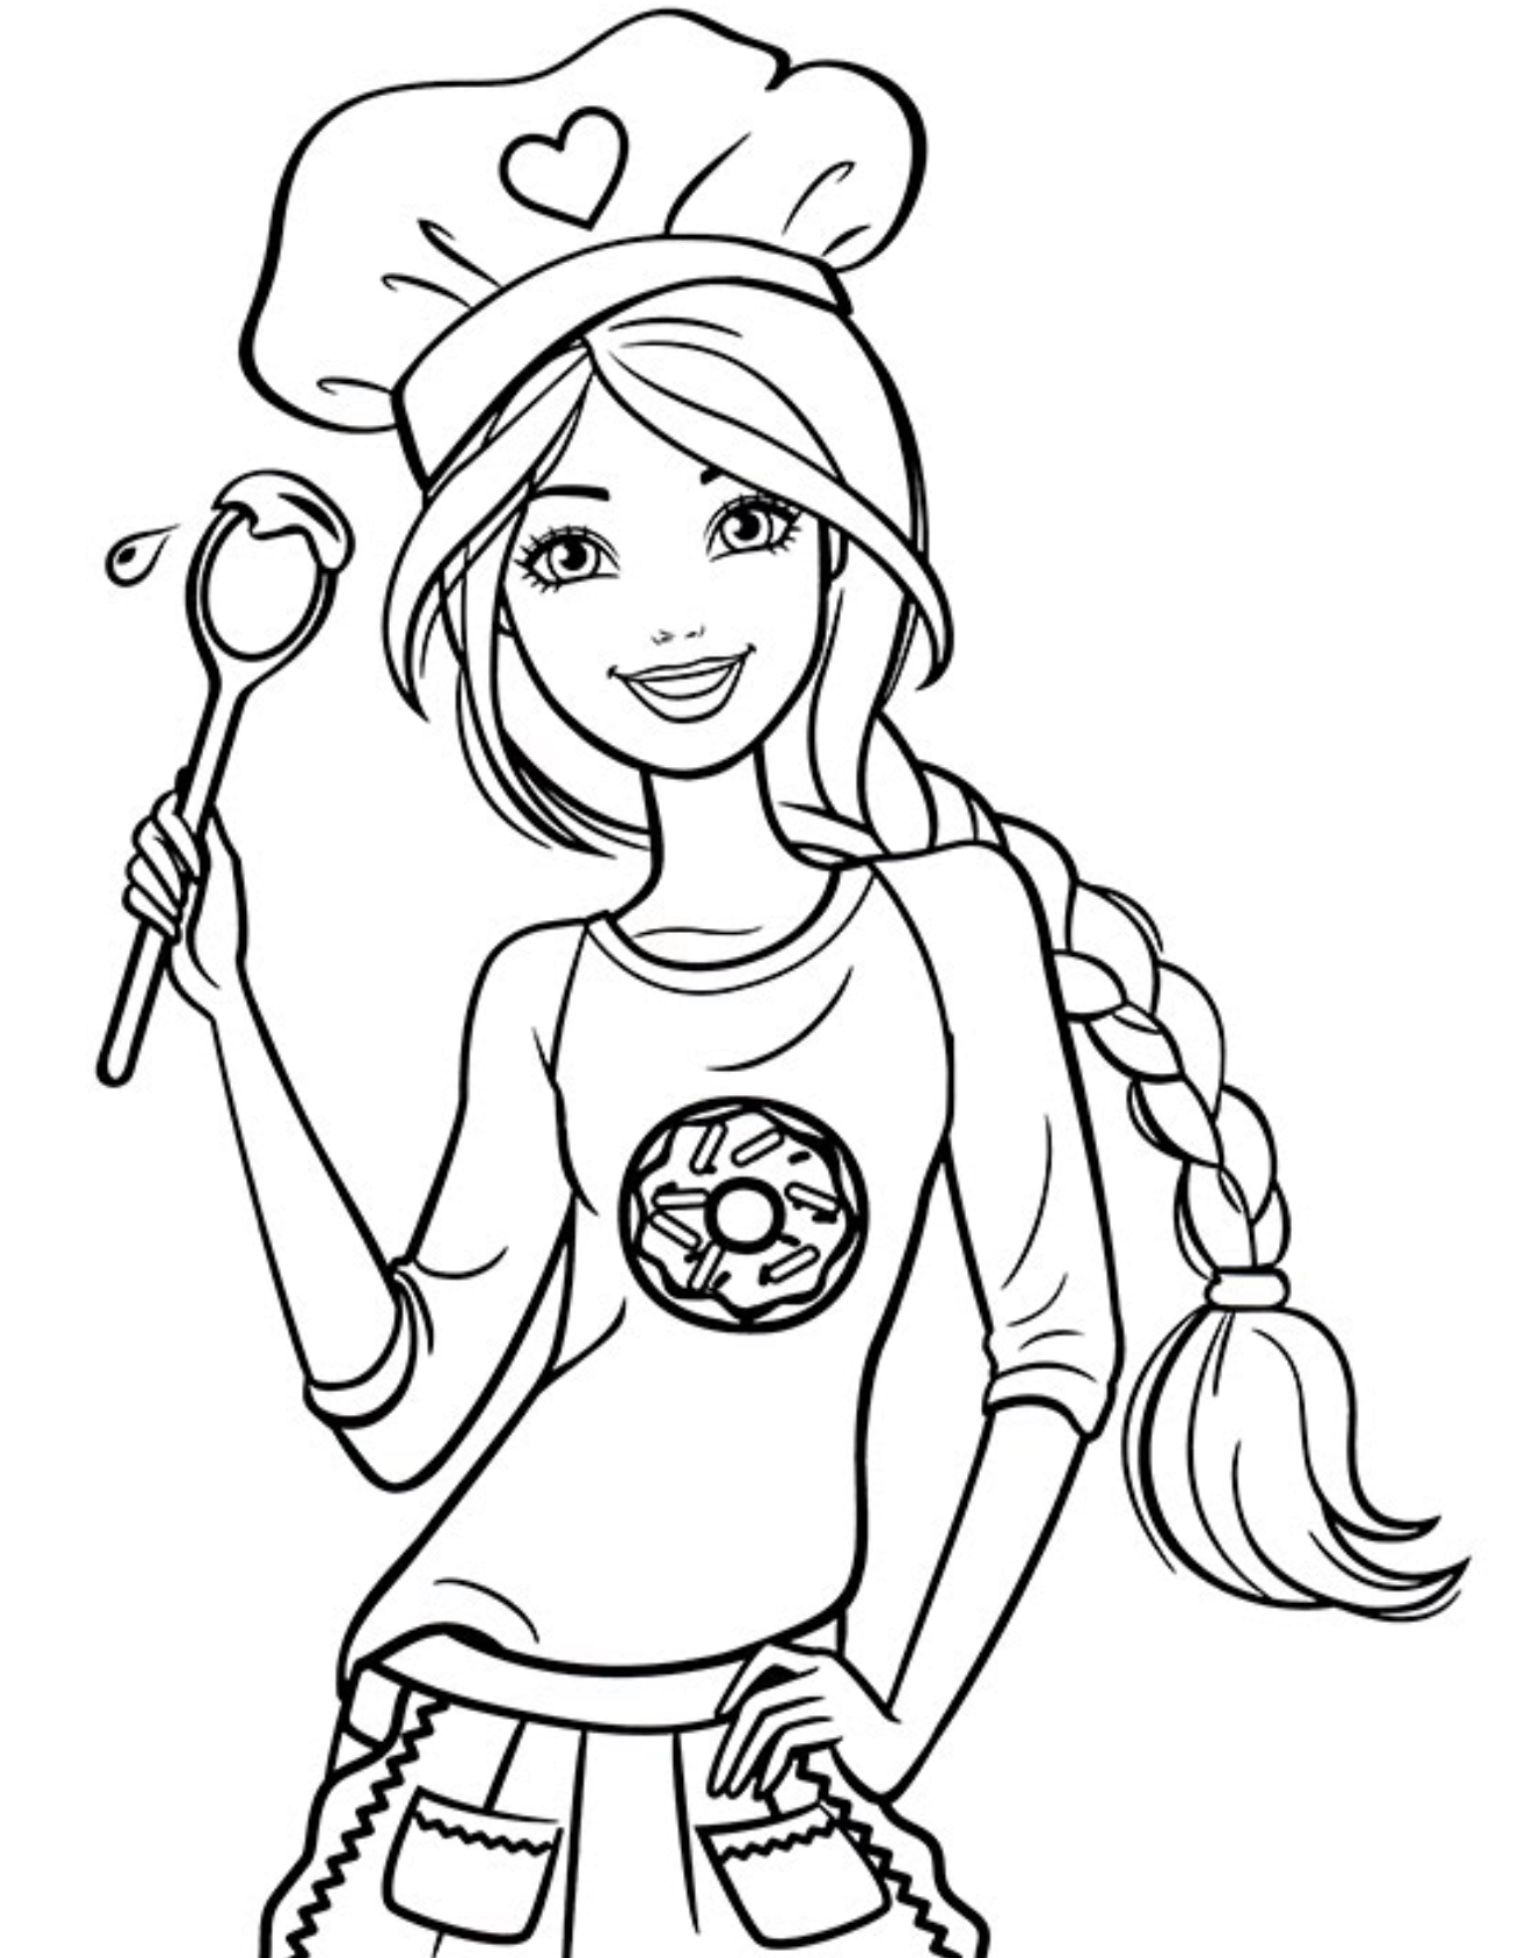 coloring pages of barbie barbie chelsea free coloring pages barbie pages coloring of